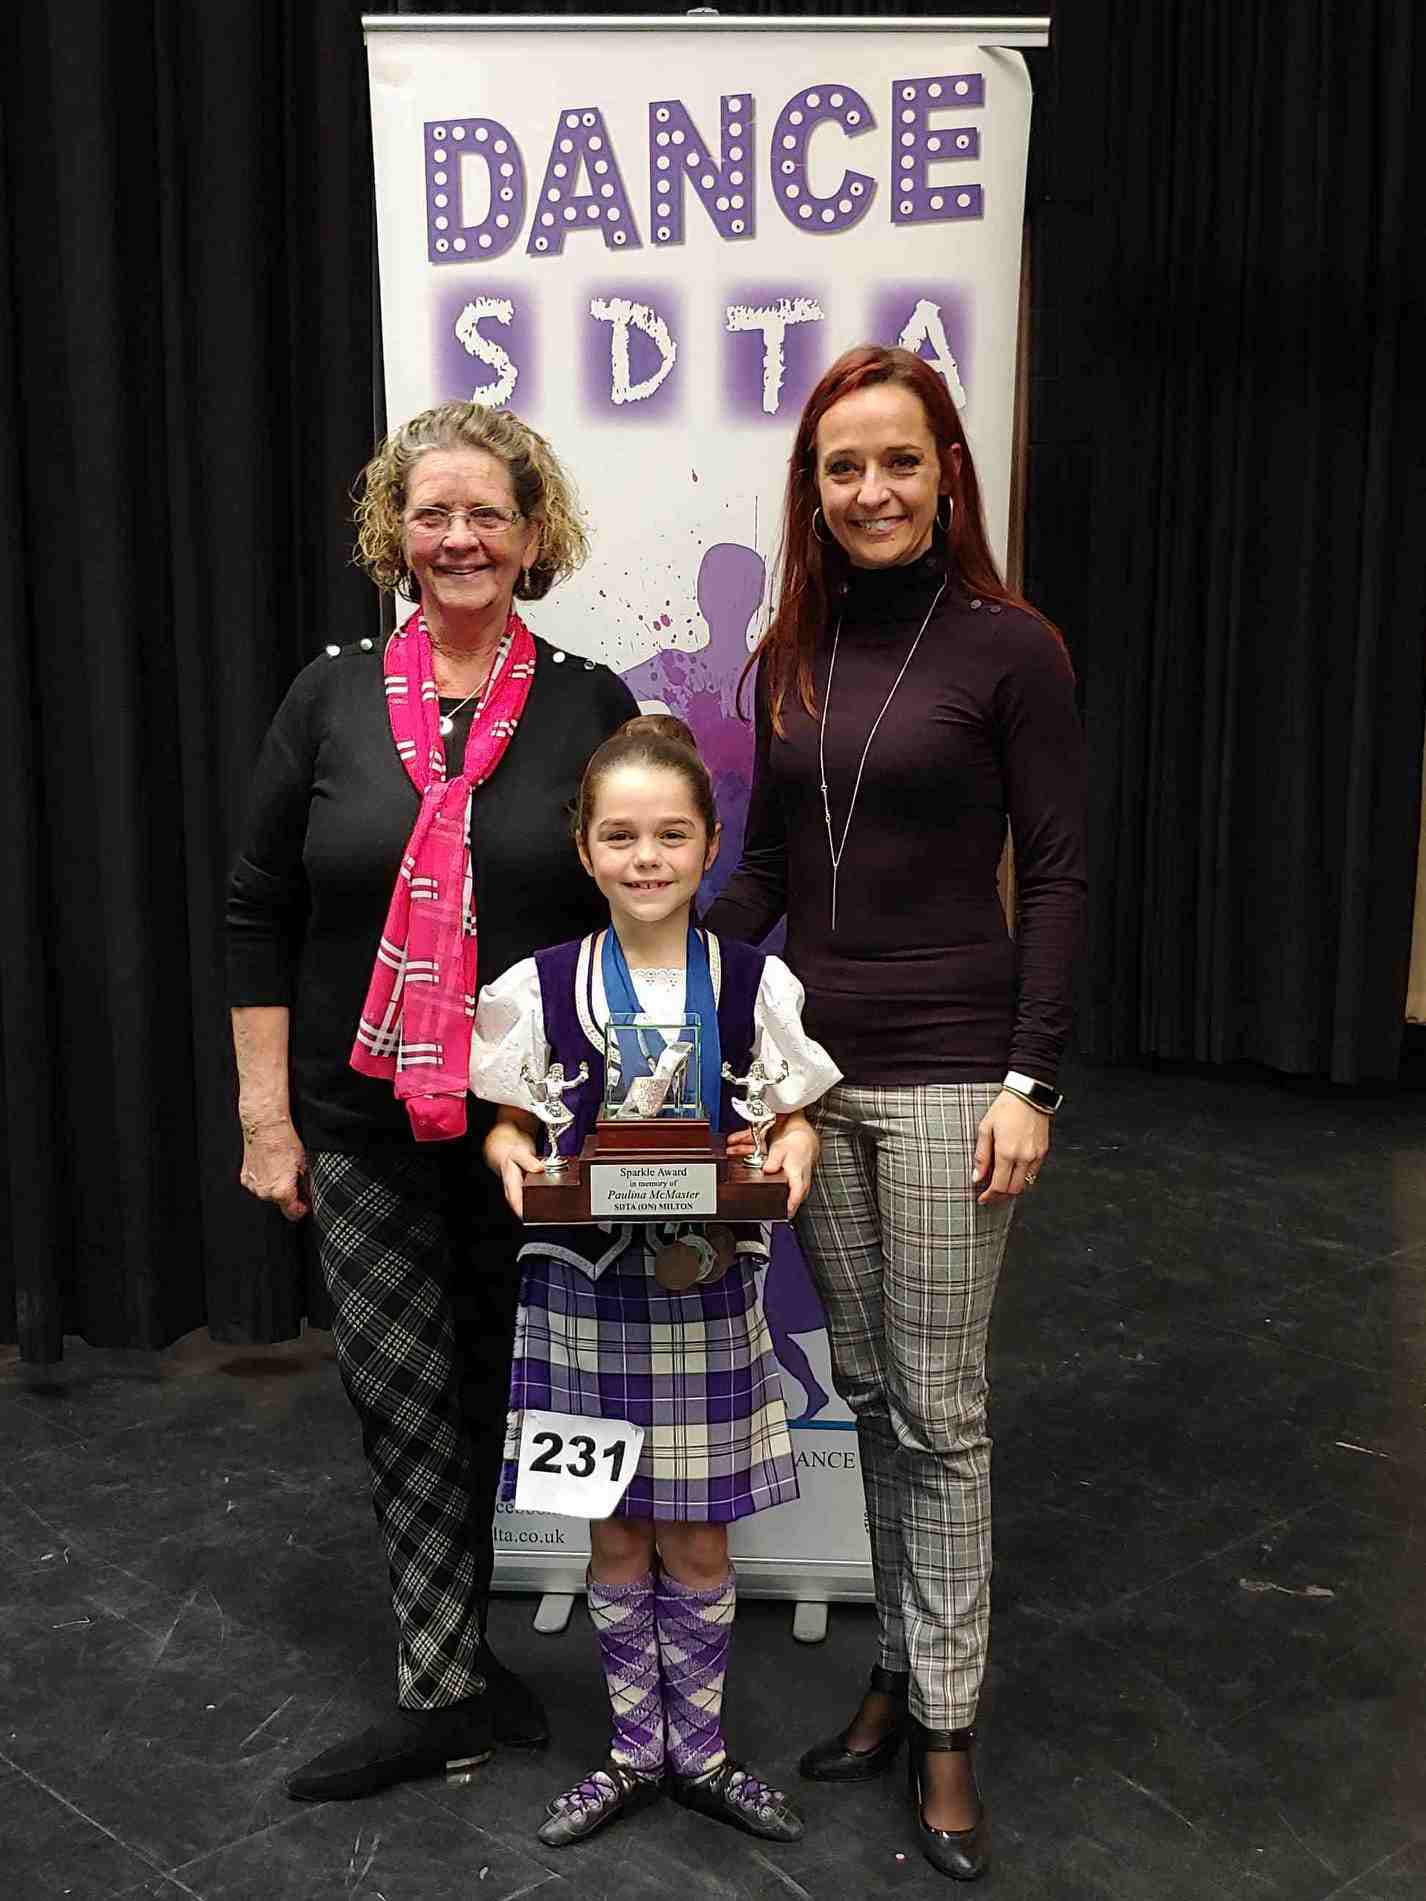 Piper - Sparkle Award